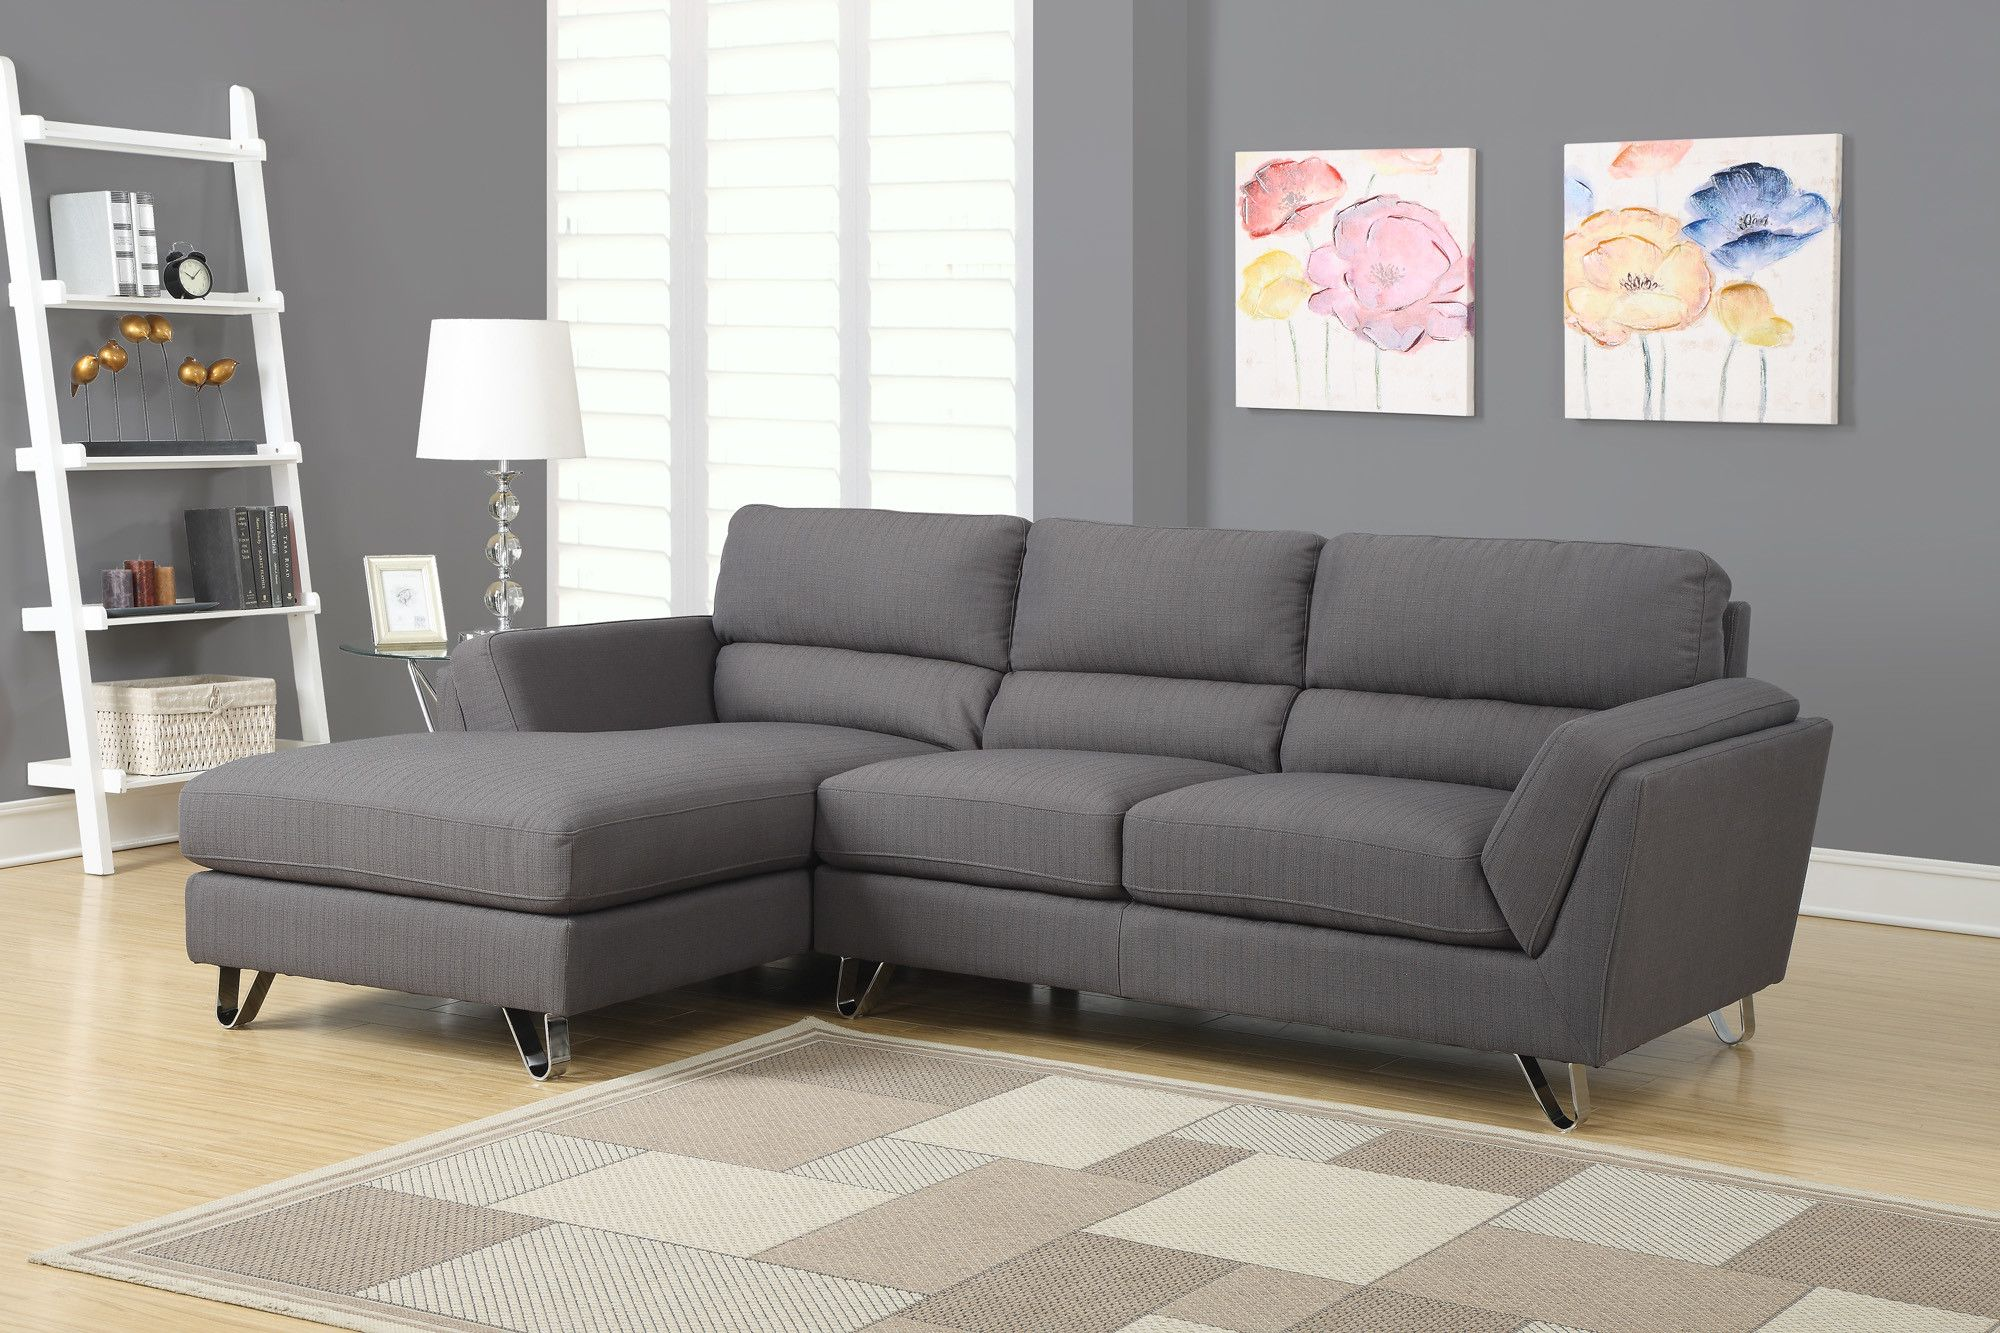 Monarch Specialties Inc Right Facing Sectional Sectional Sofa Sectional Sofa Couch Living Room Furniture Online